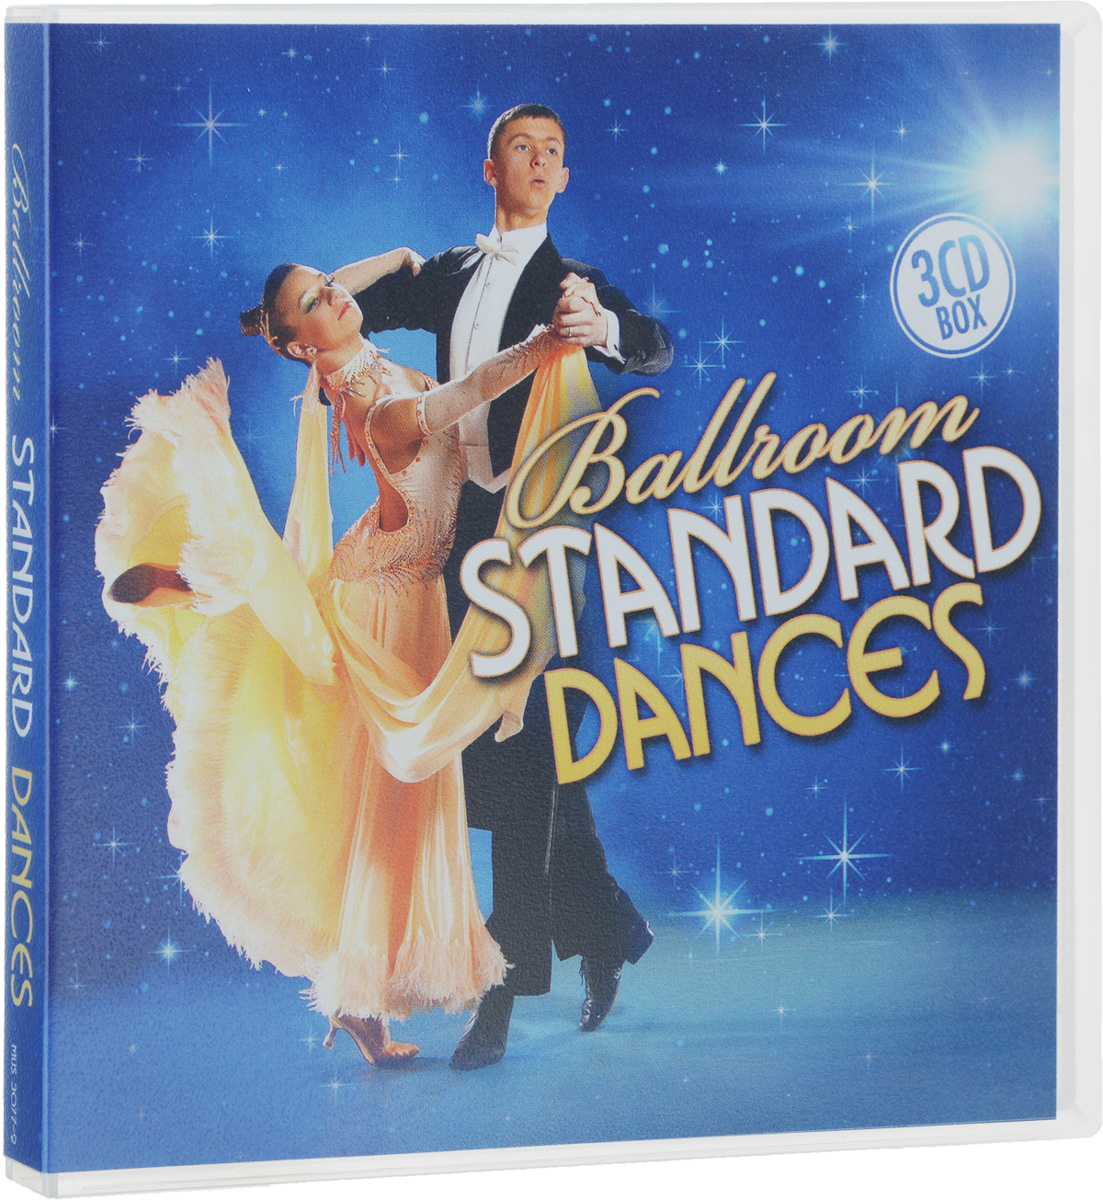 Ballroom Standard Dances (3 CD)